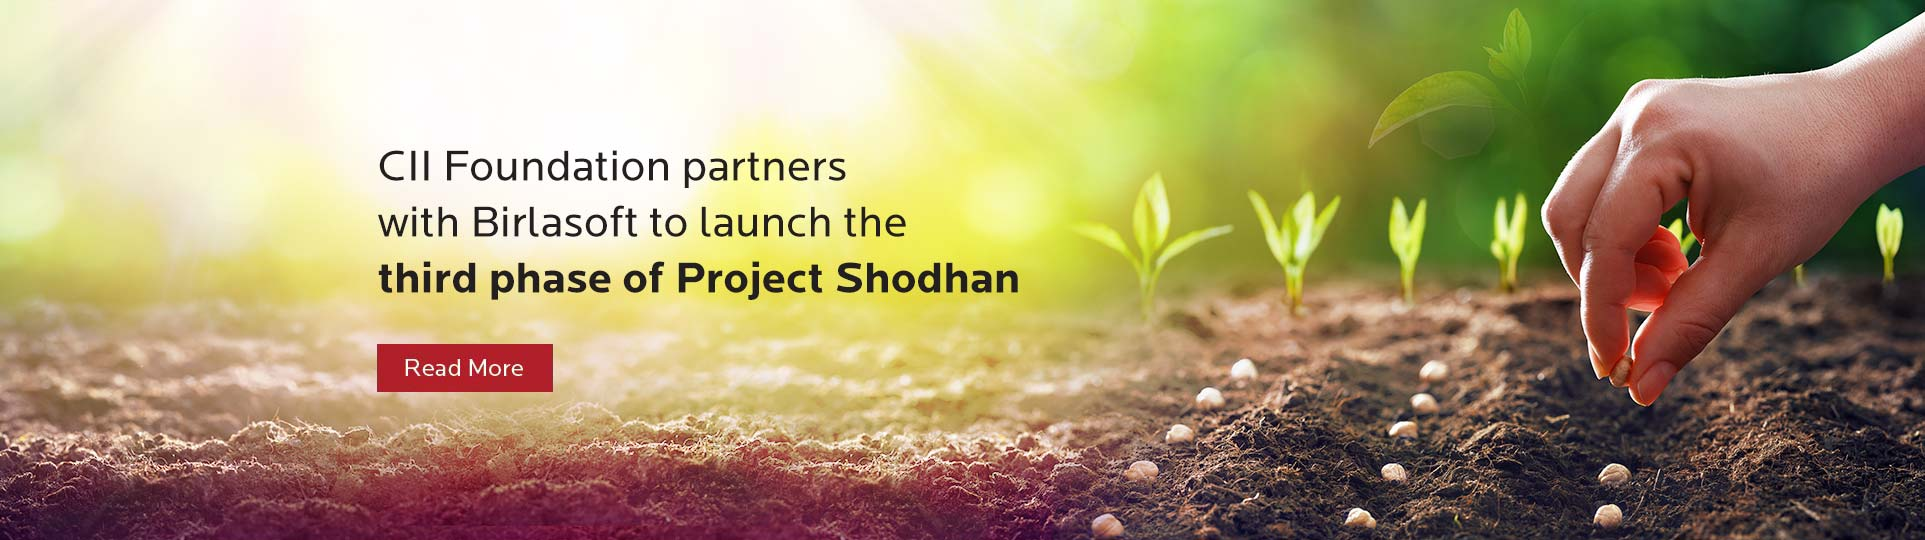 CII Foundation partners with Birlasoft to launch the third phase of Project Shodhan